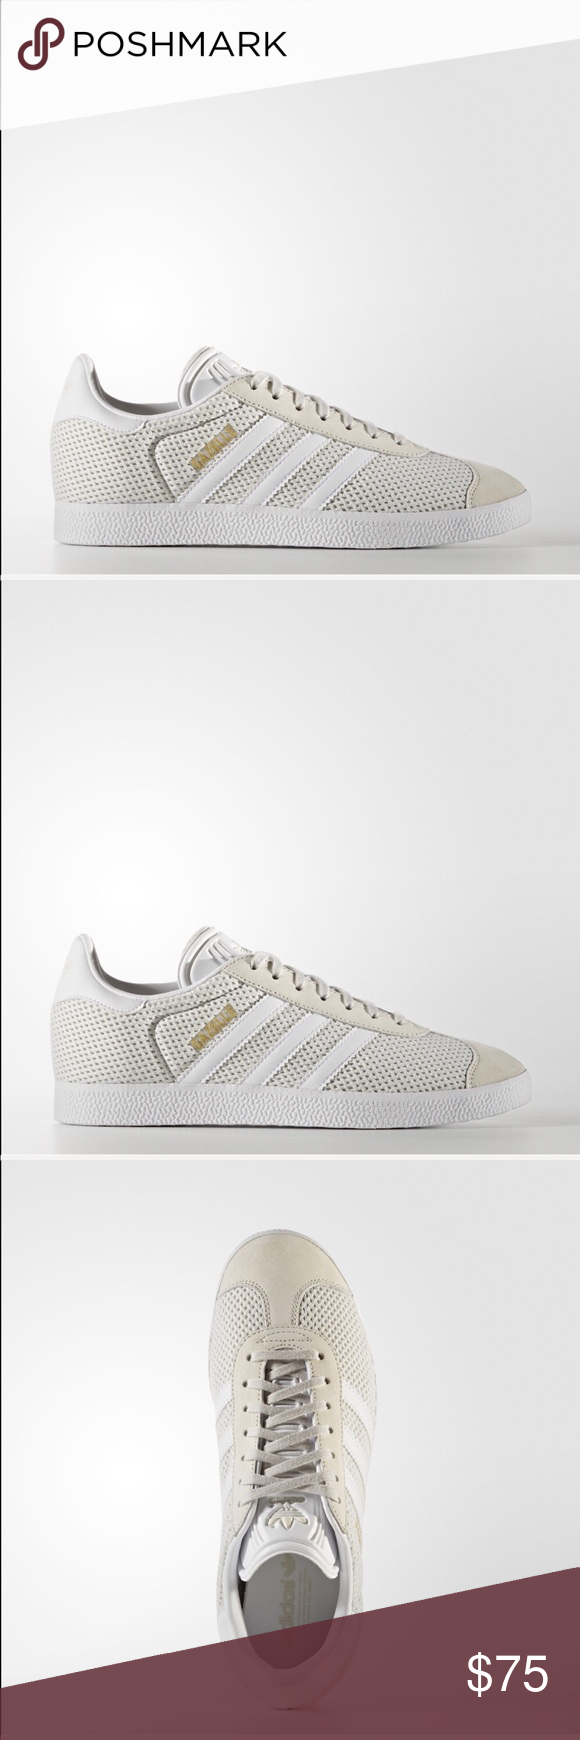 Women's Cut New 9 Talccloud Low 5 Adidas Gazelle Whitetalc 54ASLcRjq3